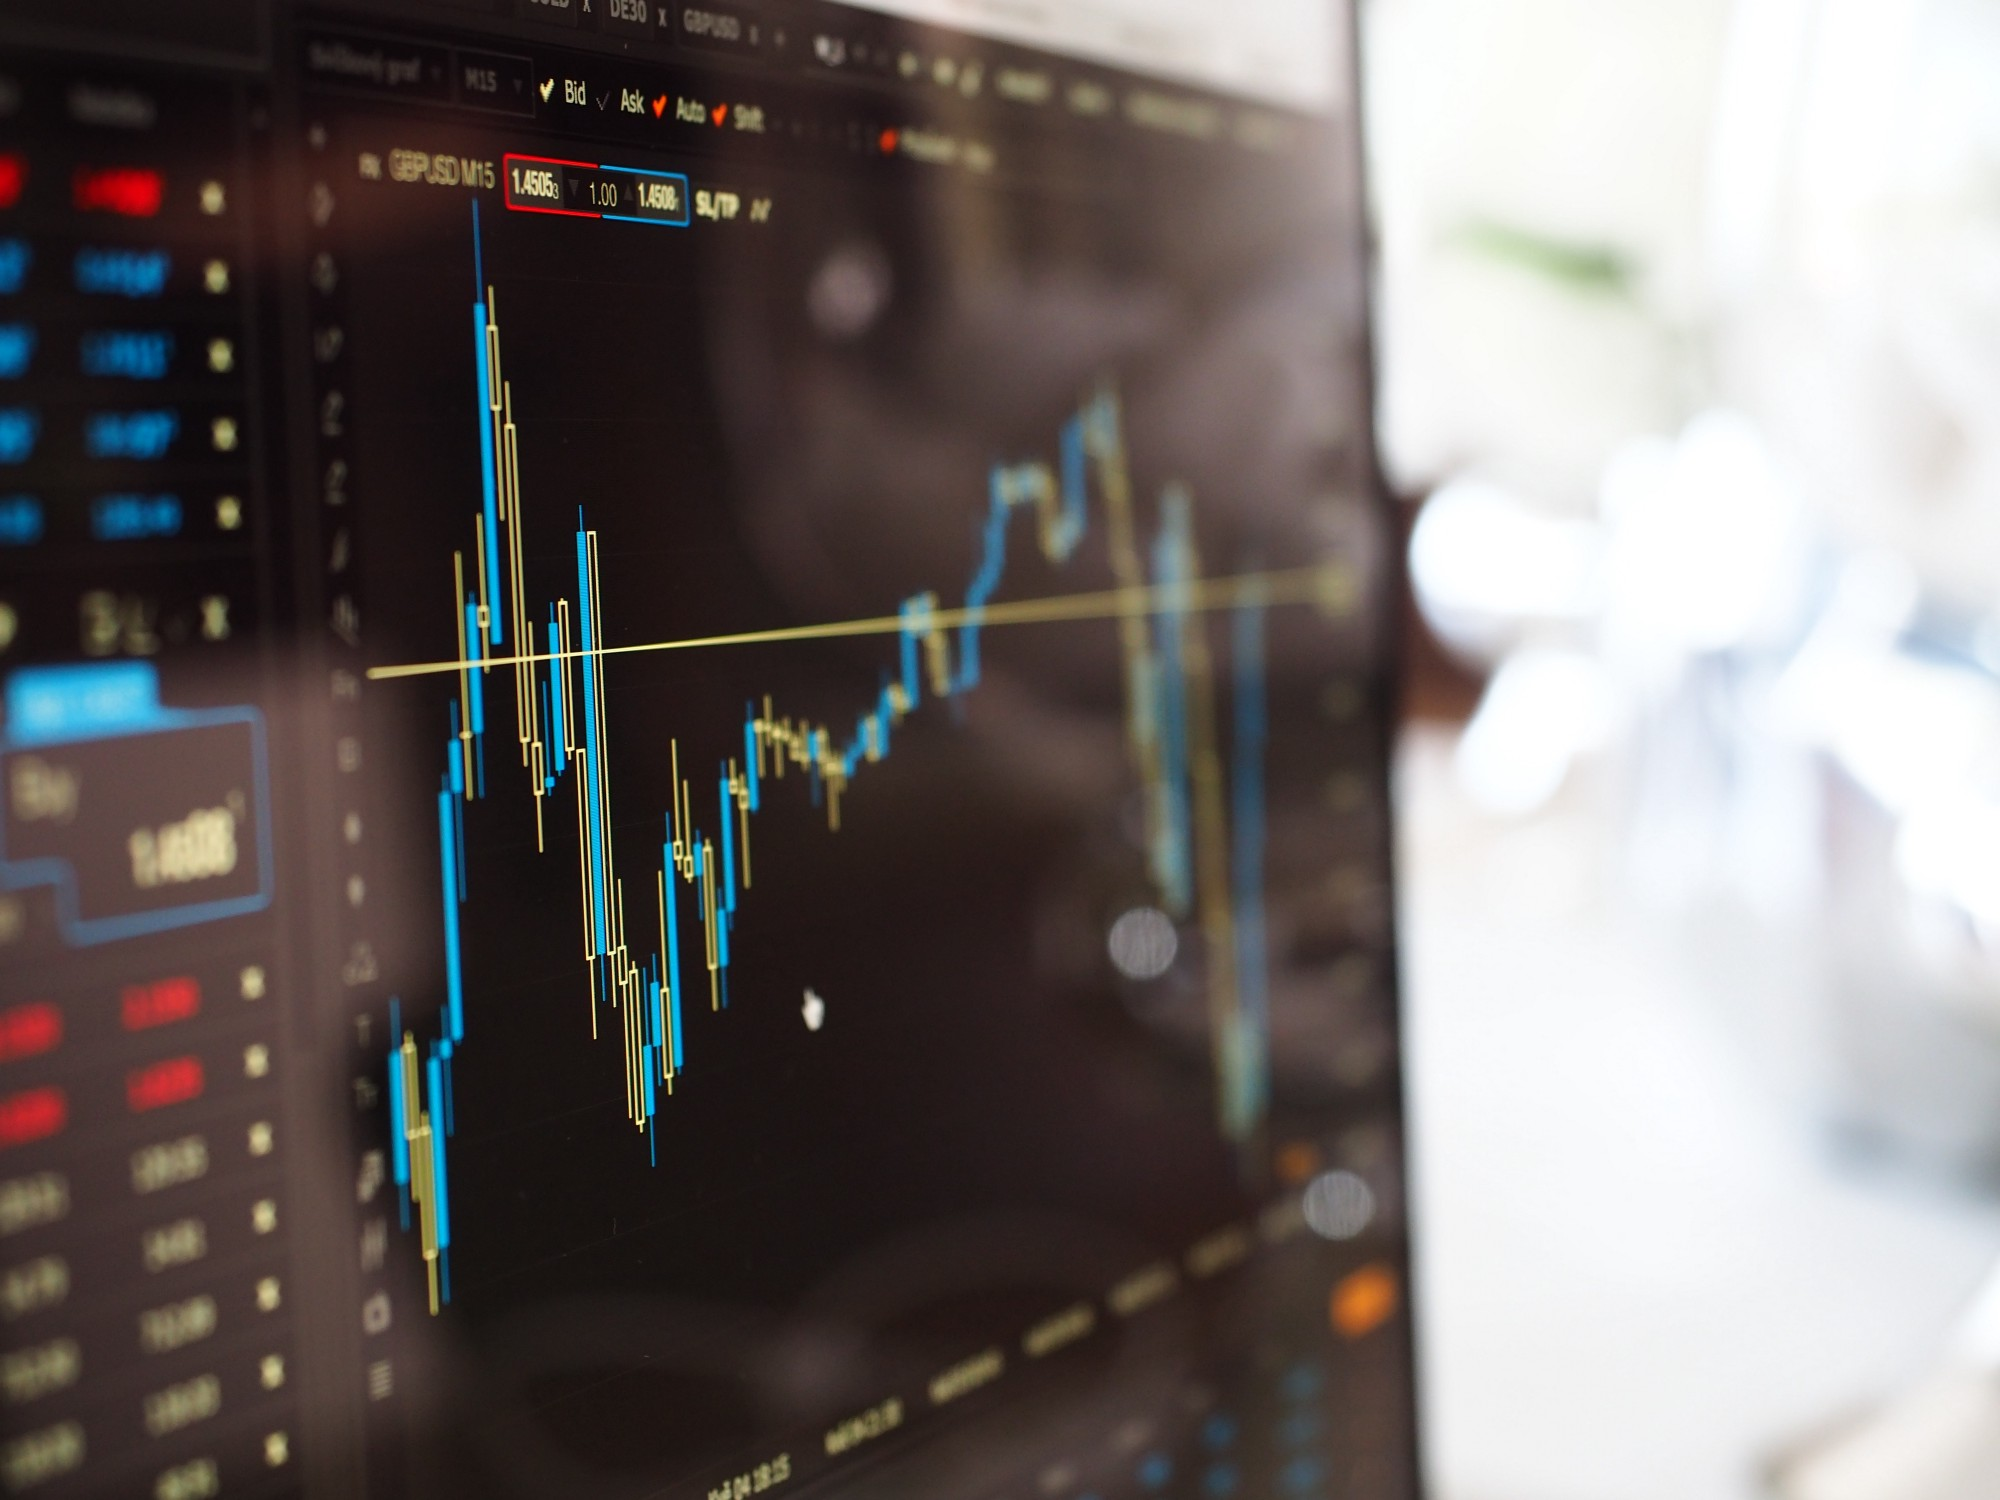 Simple stock market tutorial when to sell stocks simple stock.